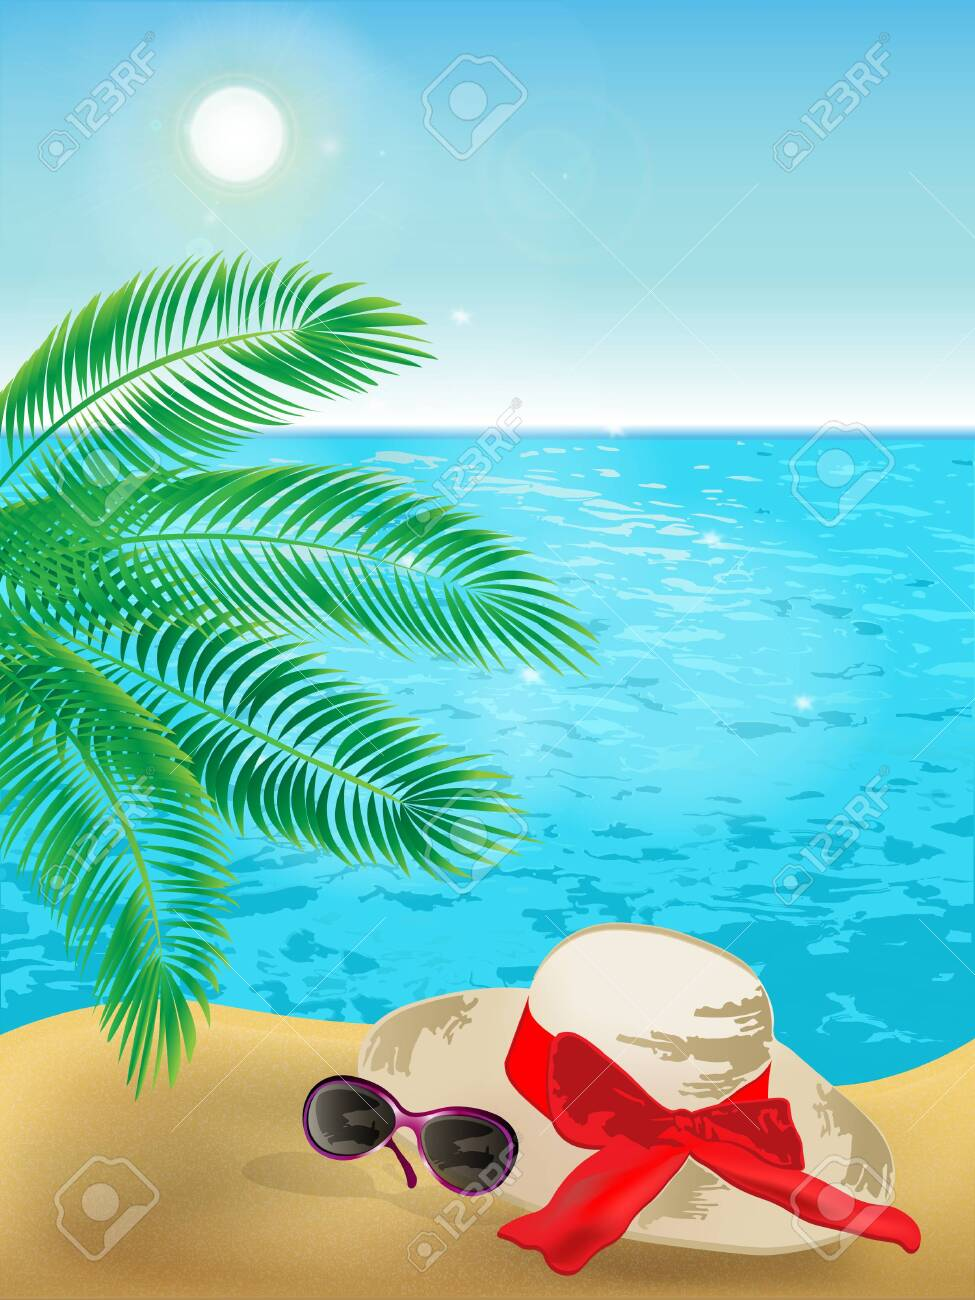 Summer background of sunny beach with palm tree, sunglasses, hat and blue sea. - 153551529